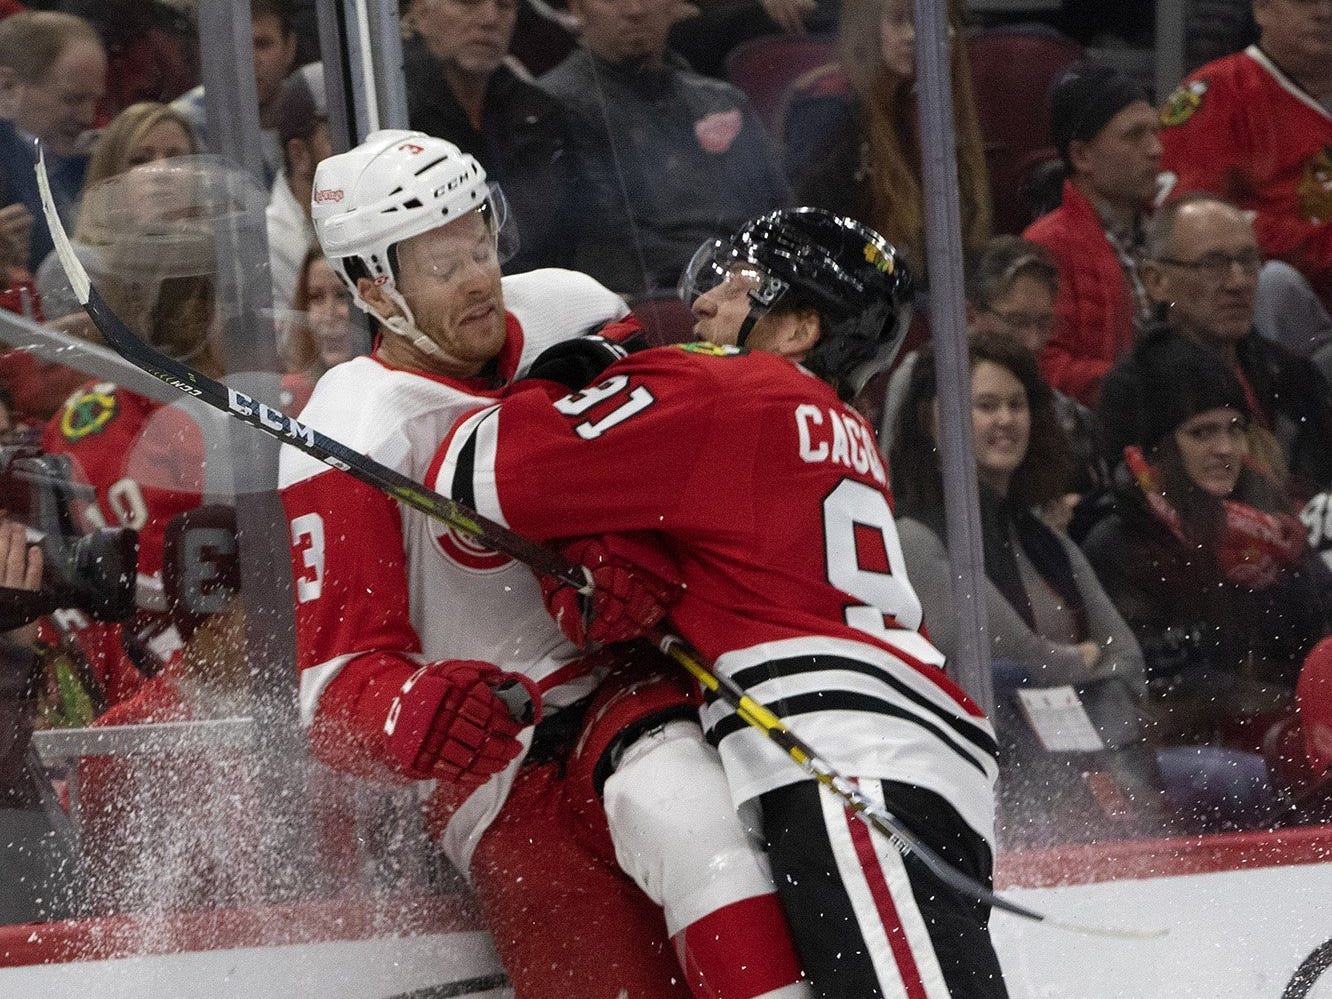 Chicago Blackhawks center Drake Caggiula slams Detroit Red Wings defenseman Nick Jensen into the boards during the first period on Sunday, Feb. 10, 2019, at the United Center in Chicago.